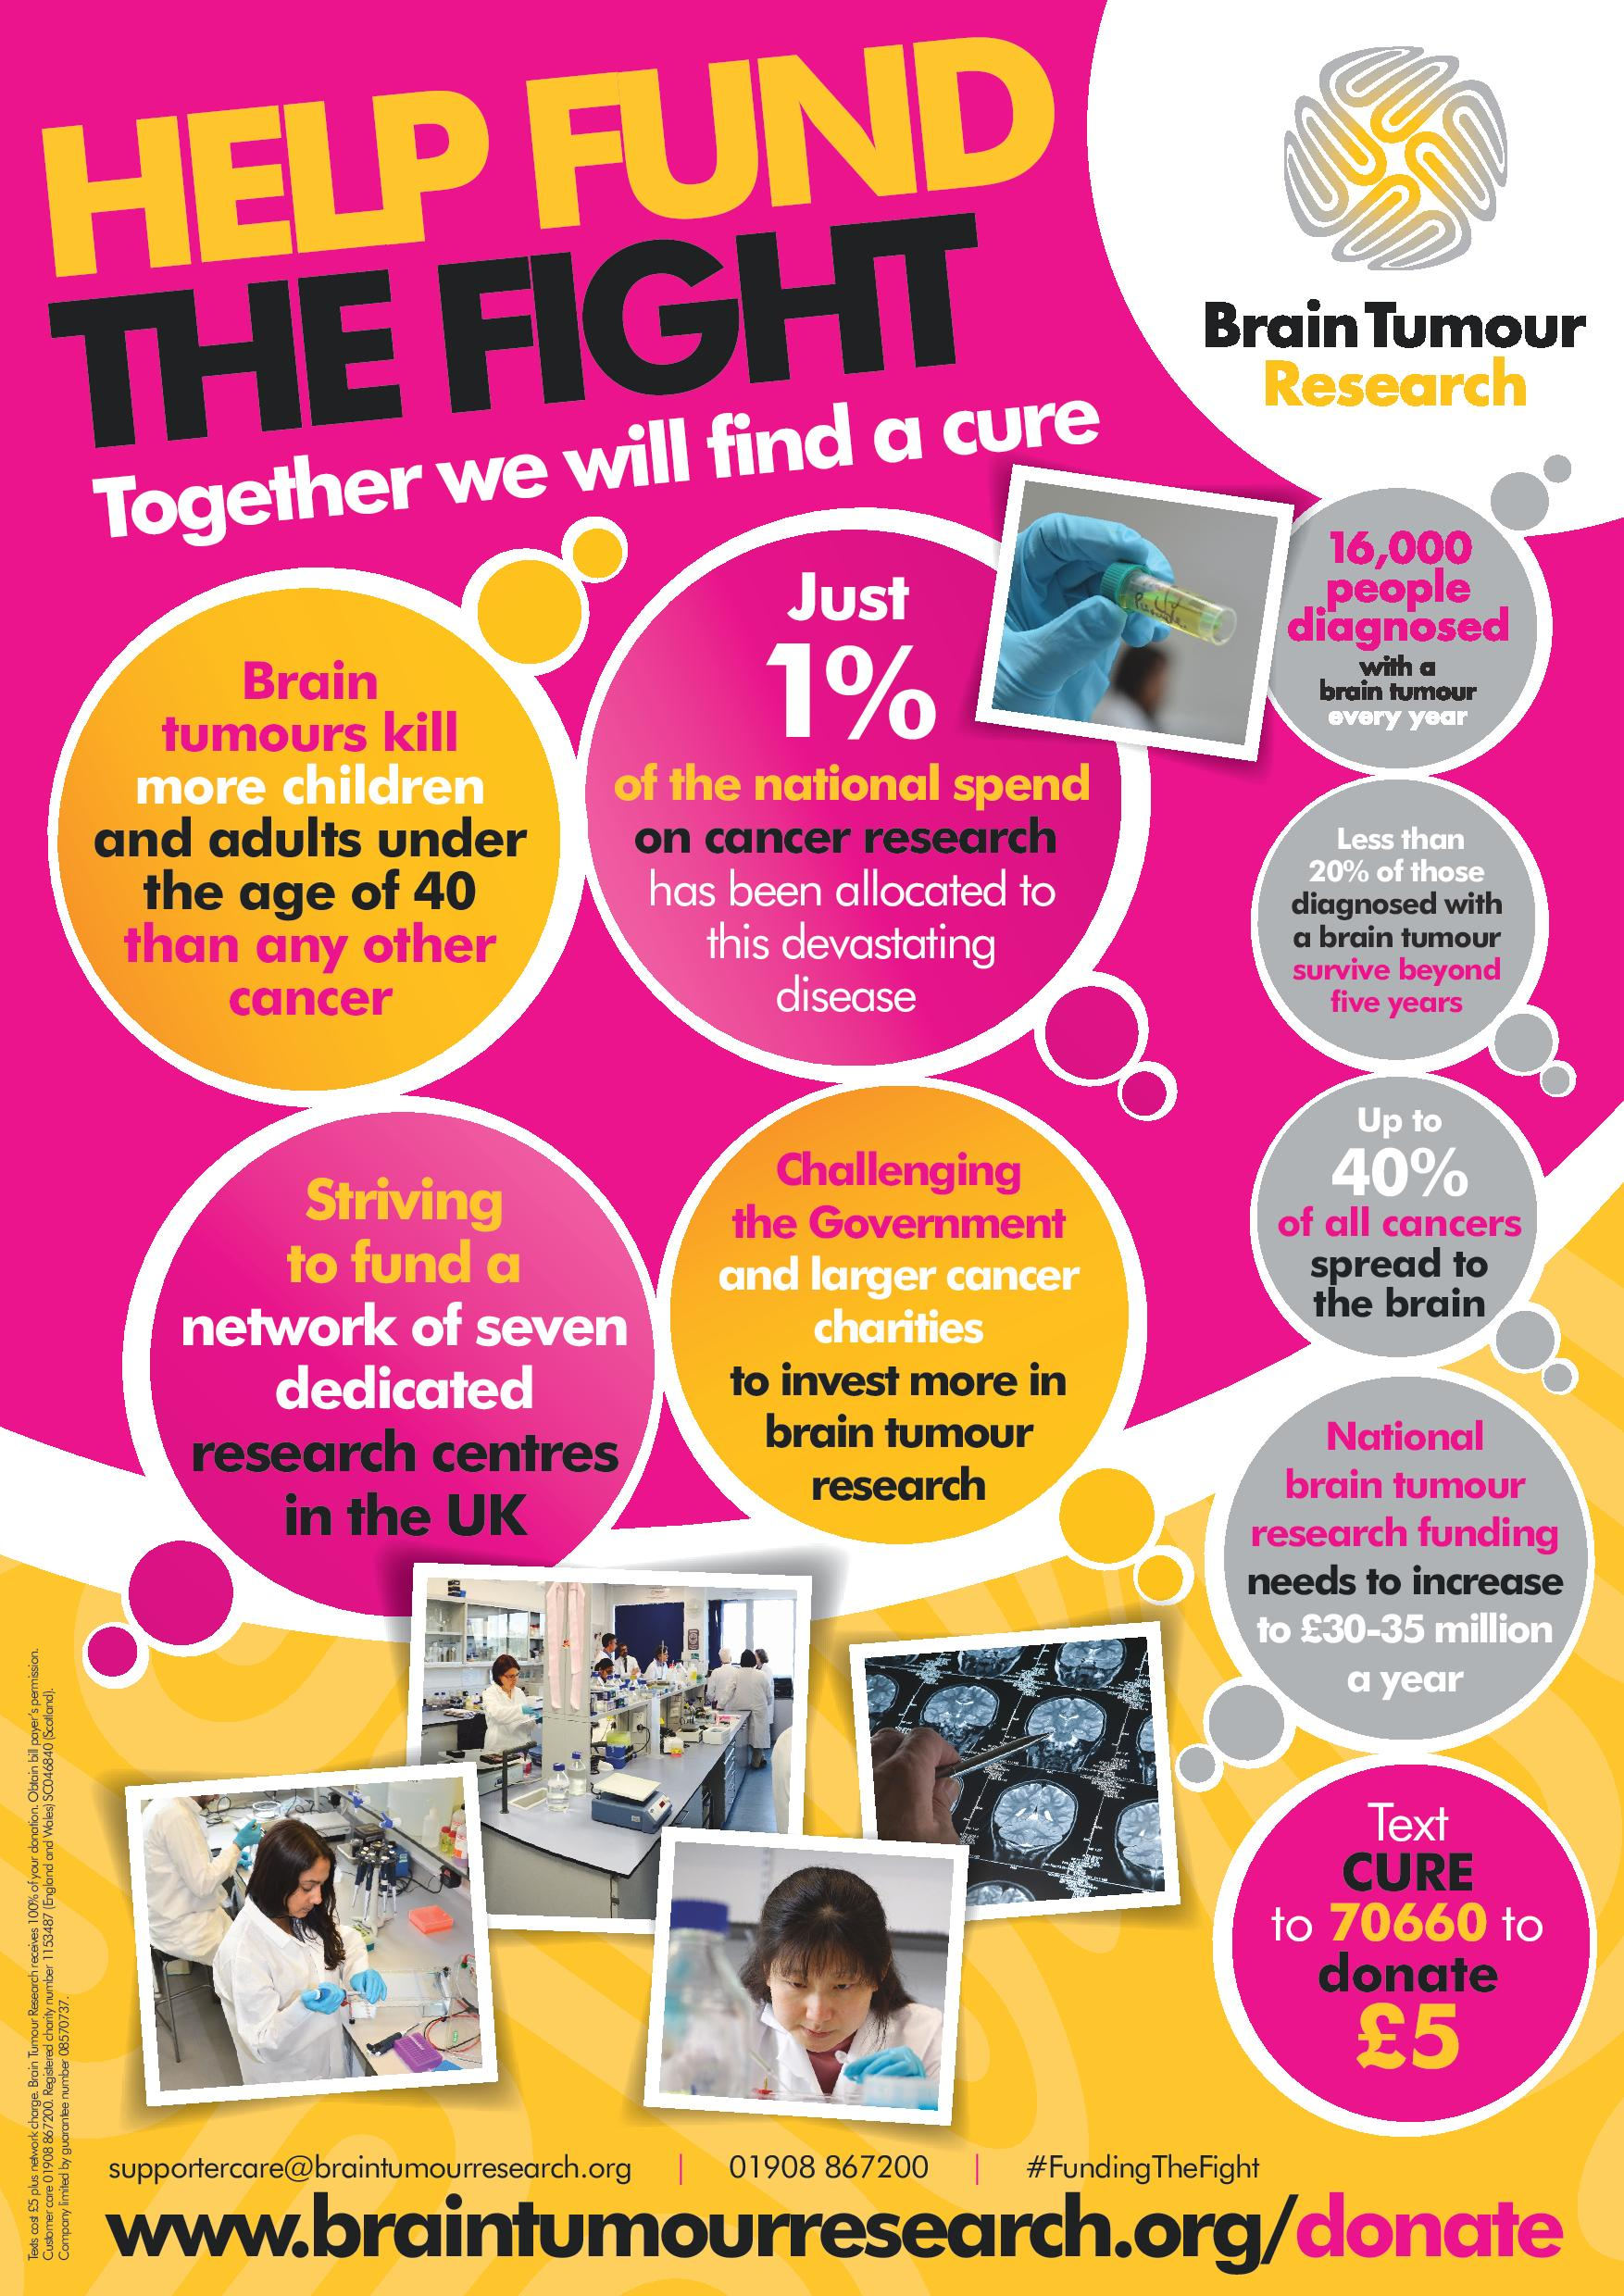 Fundraising Posters - Fundraise for Brain Tumour Research